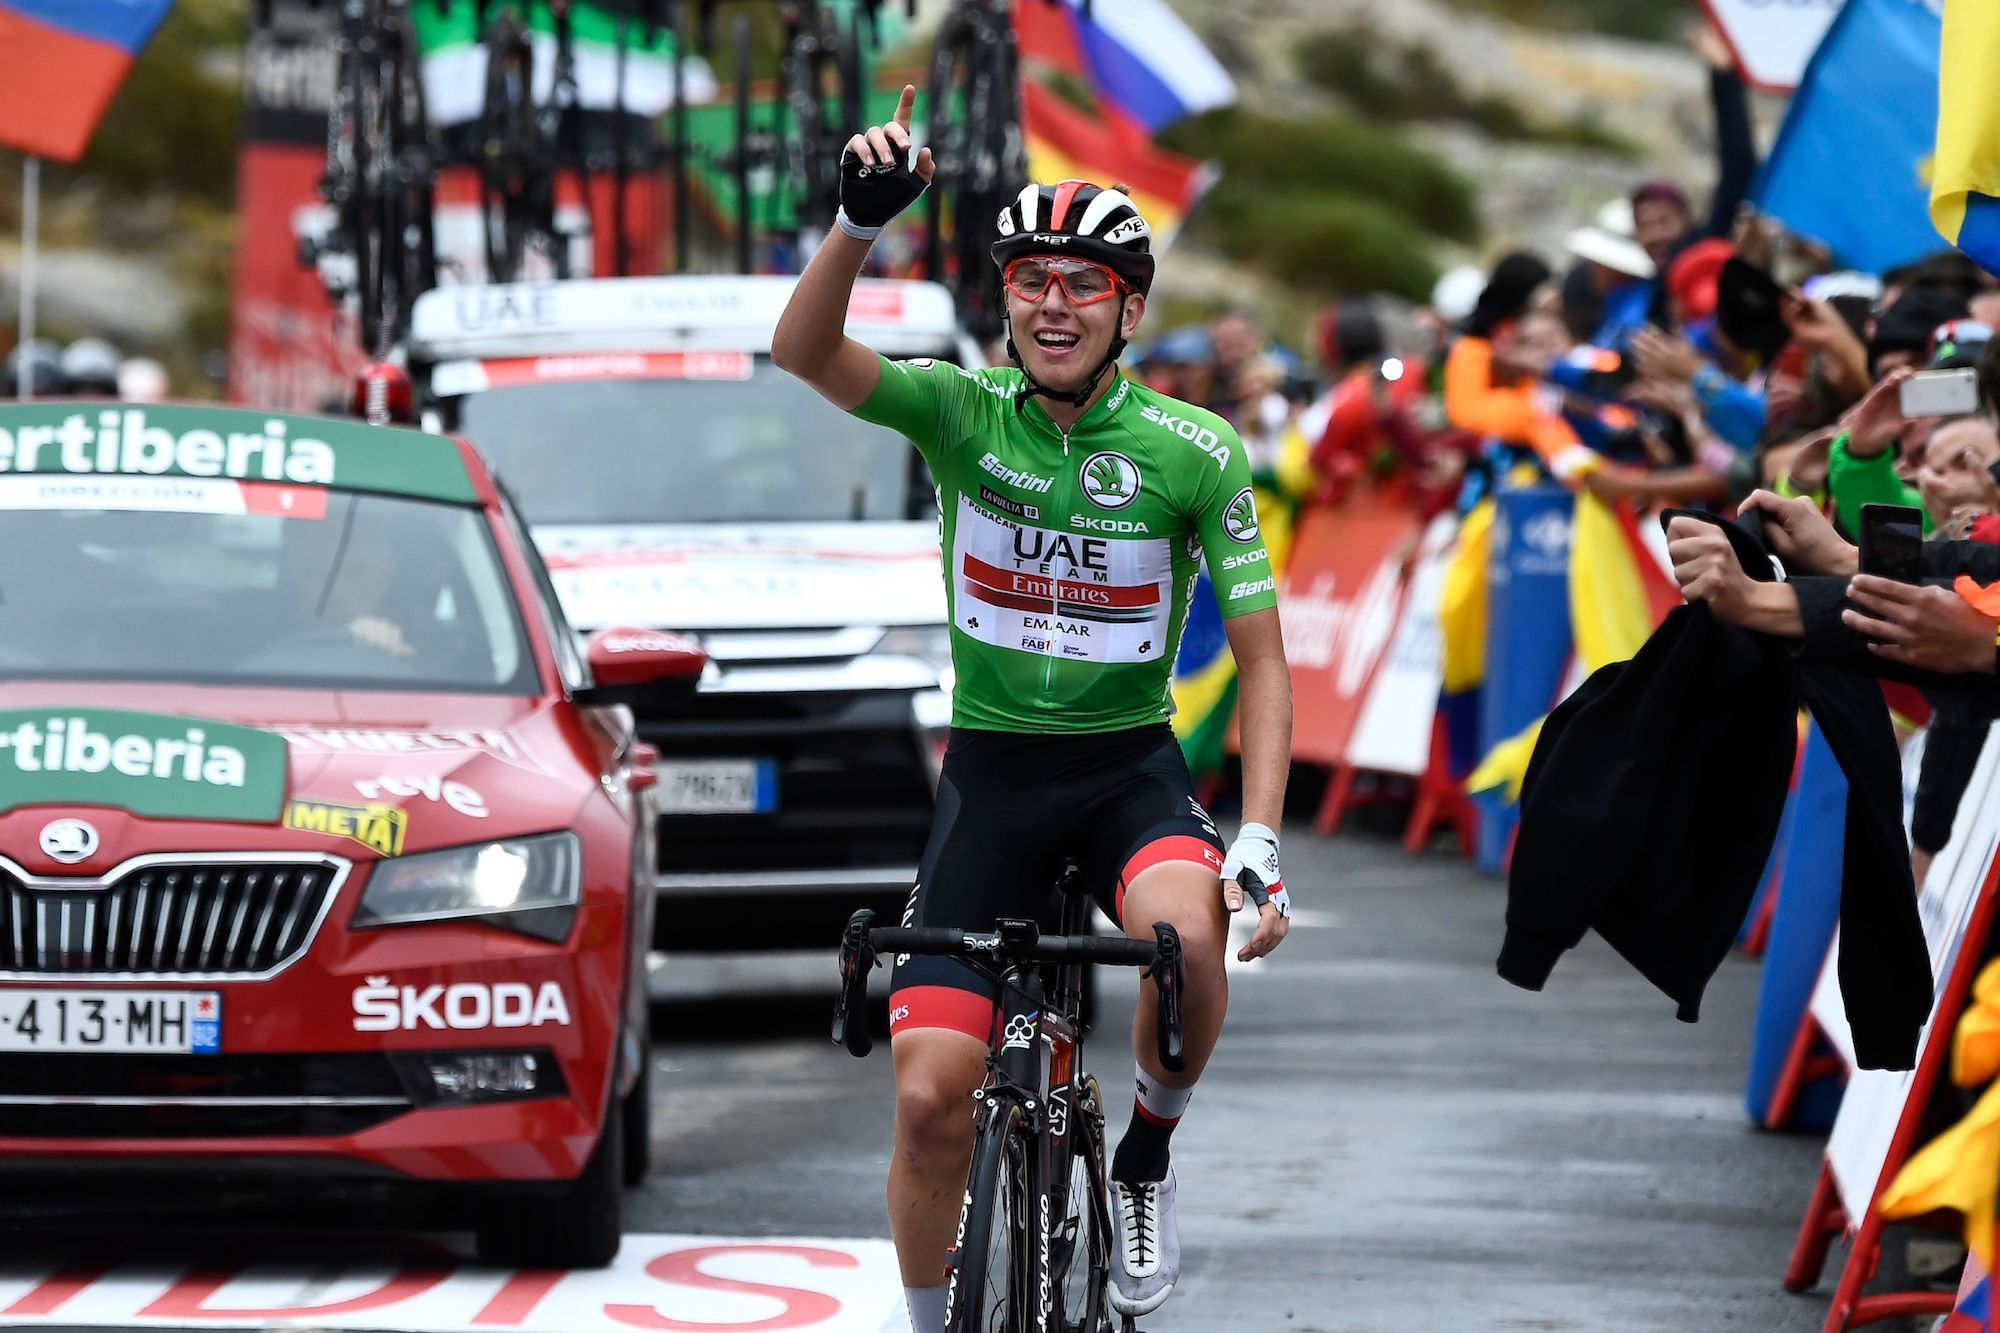 Tadej Pogačar solos to remarkable stage 20 victory as he seals Vuelta a España podium